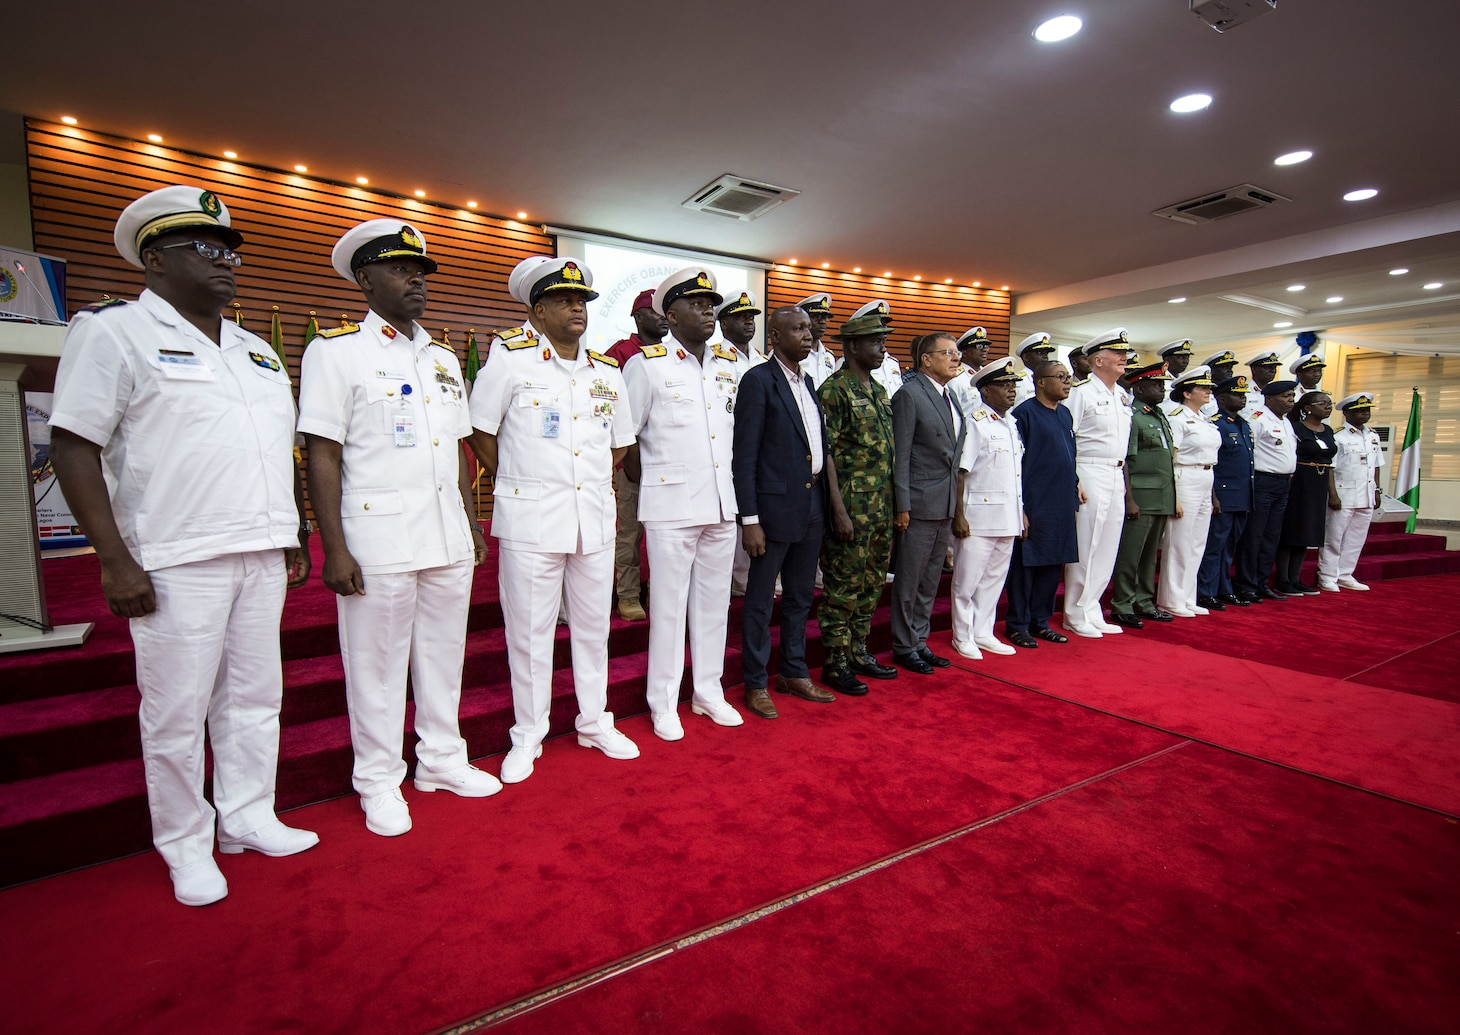 Chiefs of navy and high-level dignitaries from around West Africa, Europe and the U.S. pose for a group photo.